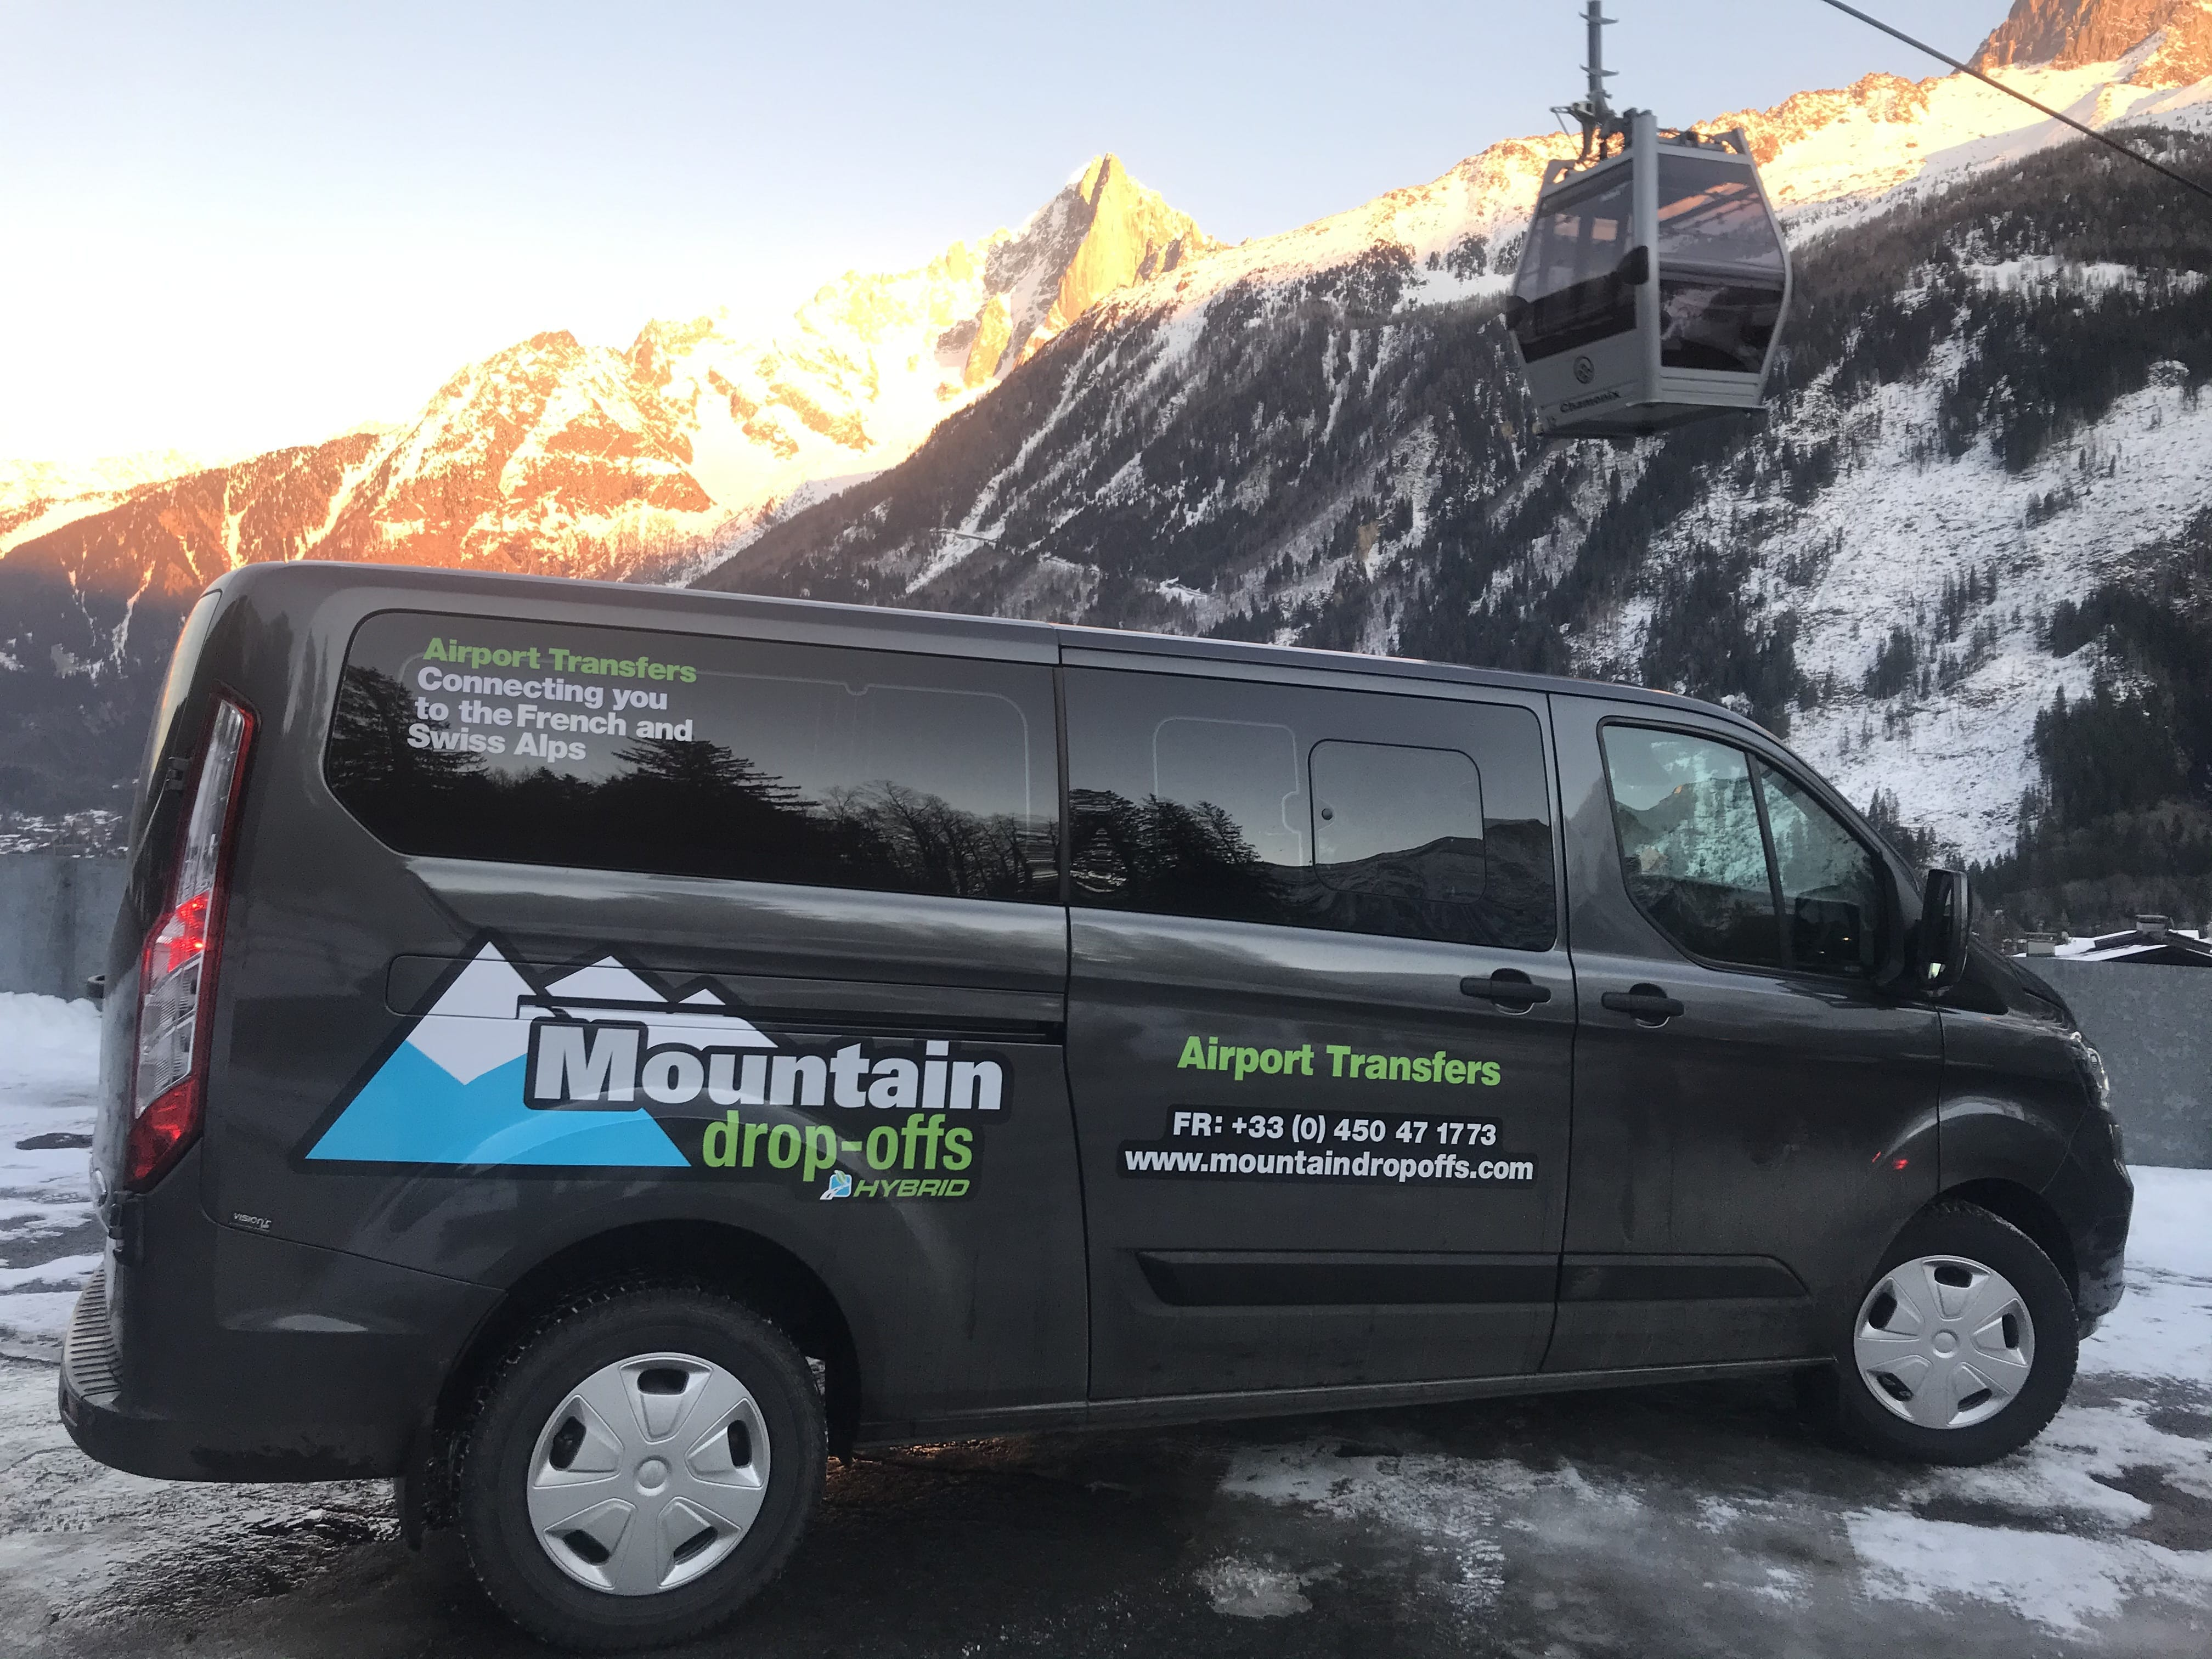 Chamonix transfer hybrid transfer vehicle in front of mountains